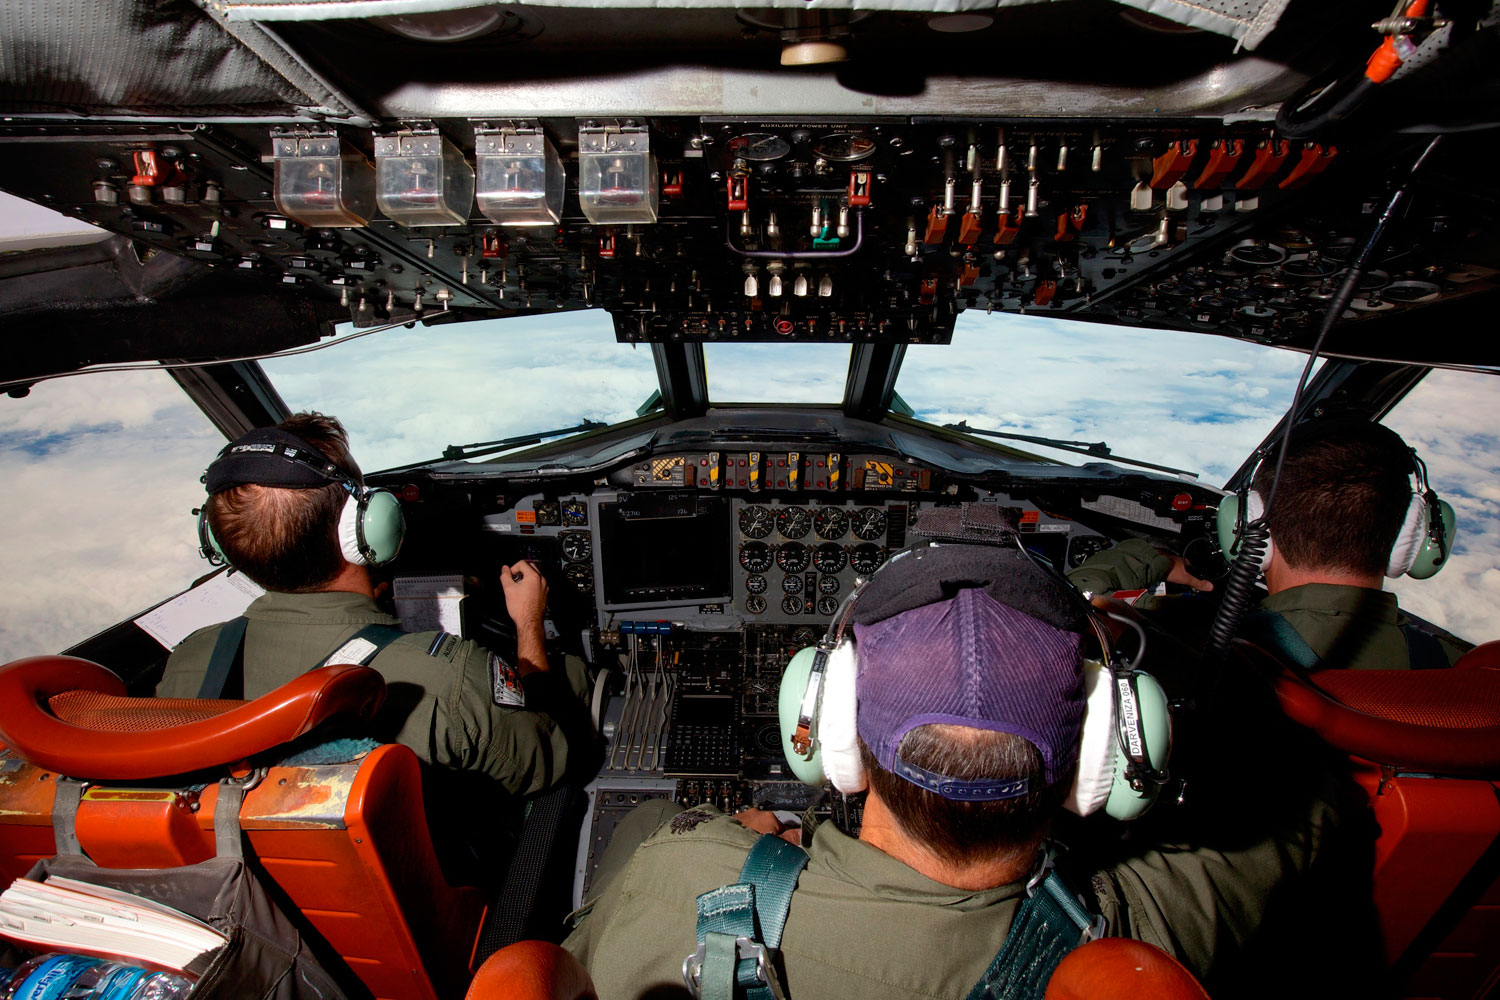 Co-Pilot Flying Officer Marc Smith (L) and crewmen fly at high altitude aboard a Royal Australian Air Force (RAAF) AP-3C Orion aircraft after searching for the missing Malaysian Airlines Flight MH370 over the southern Indian Ocean March 24, 2014.